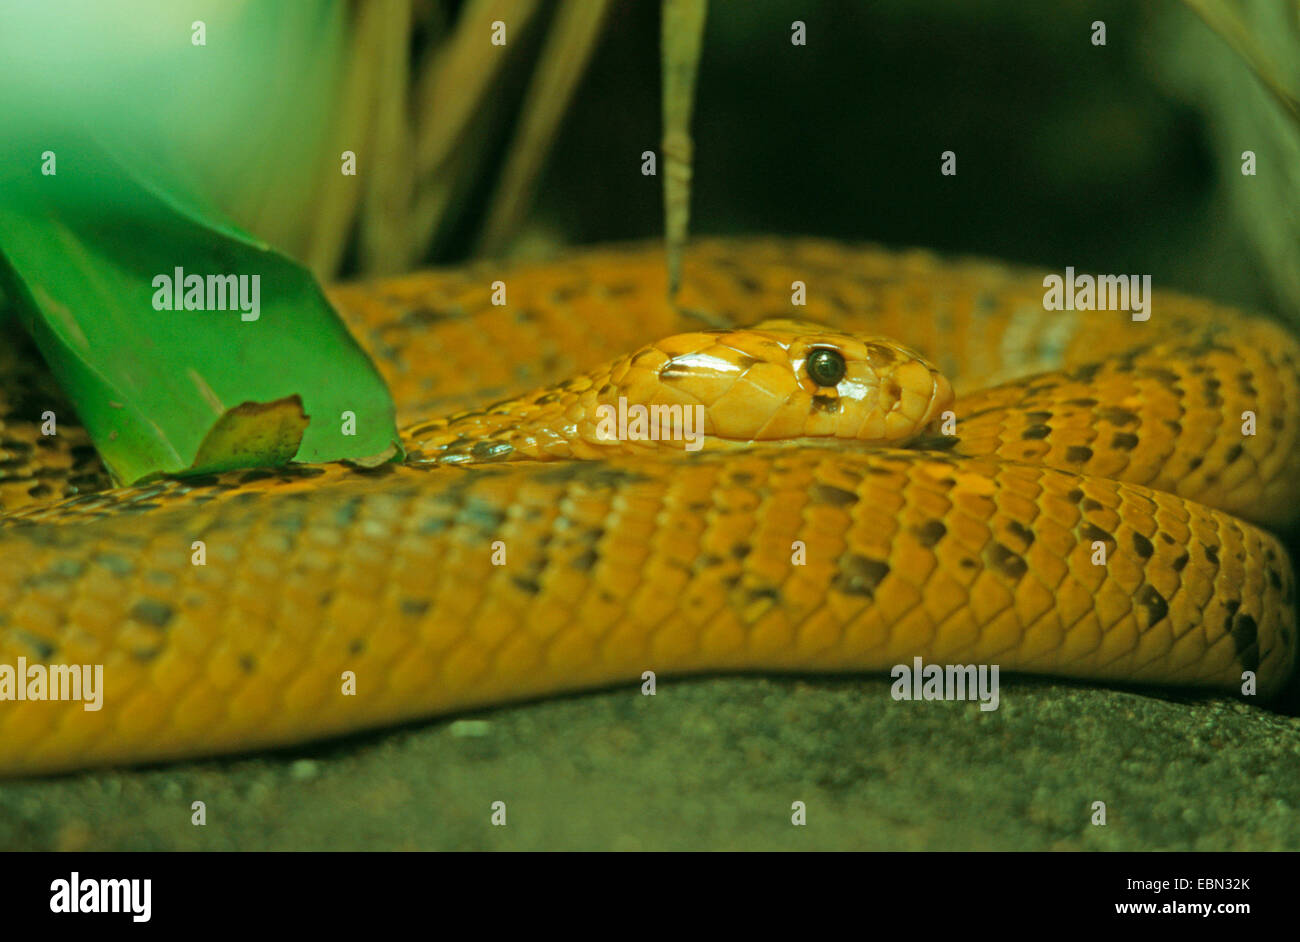 Cape cobra, yellow cobra (Naja nivea), resting - Stock Image